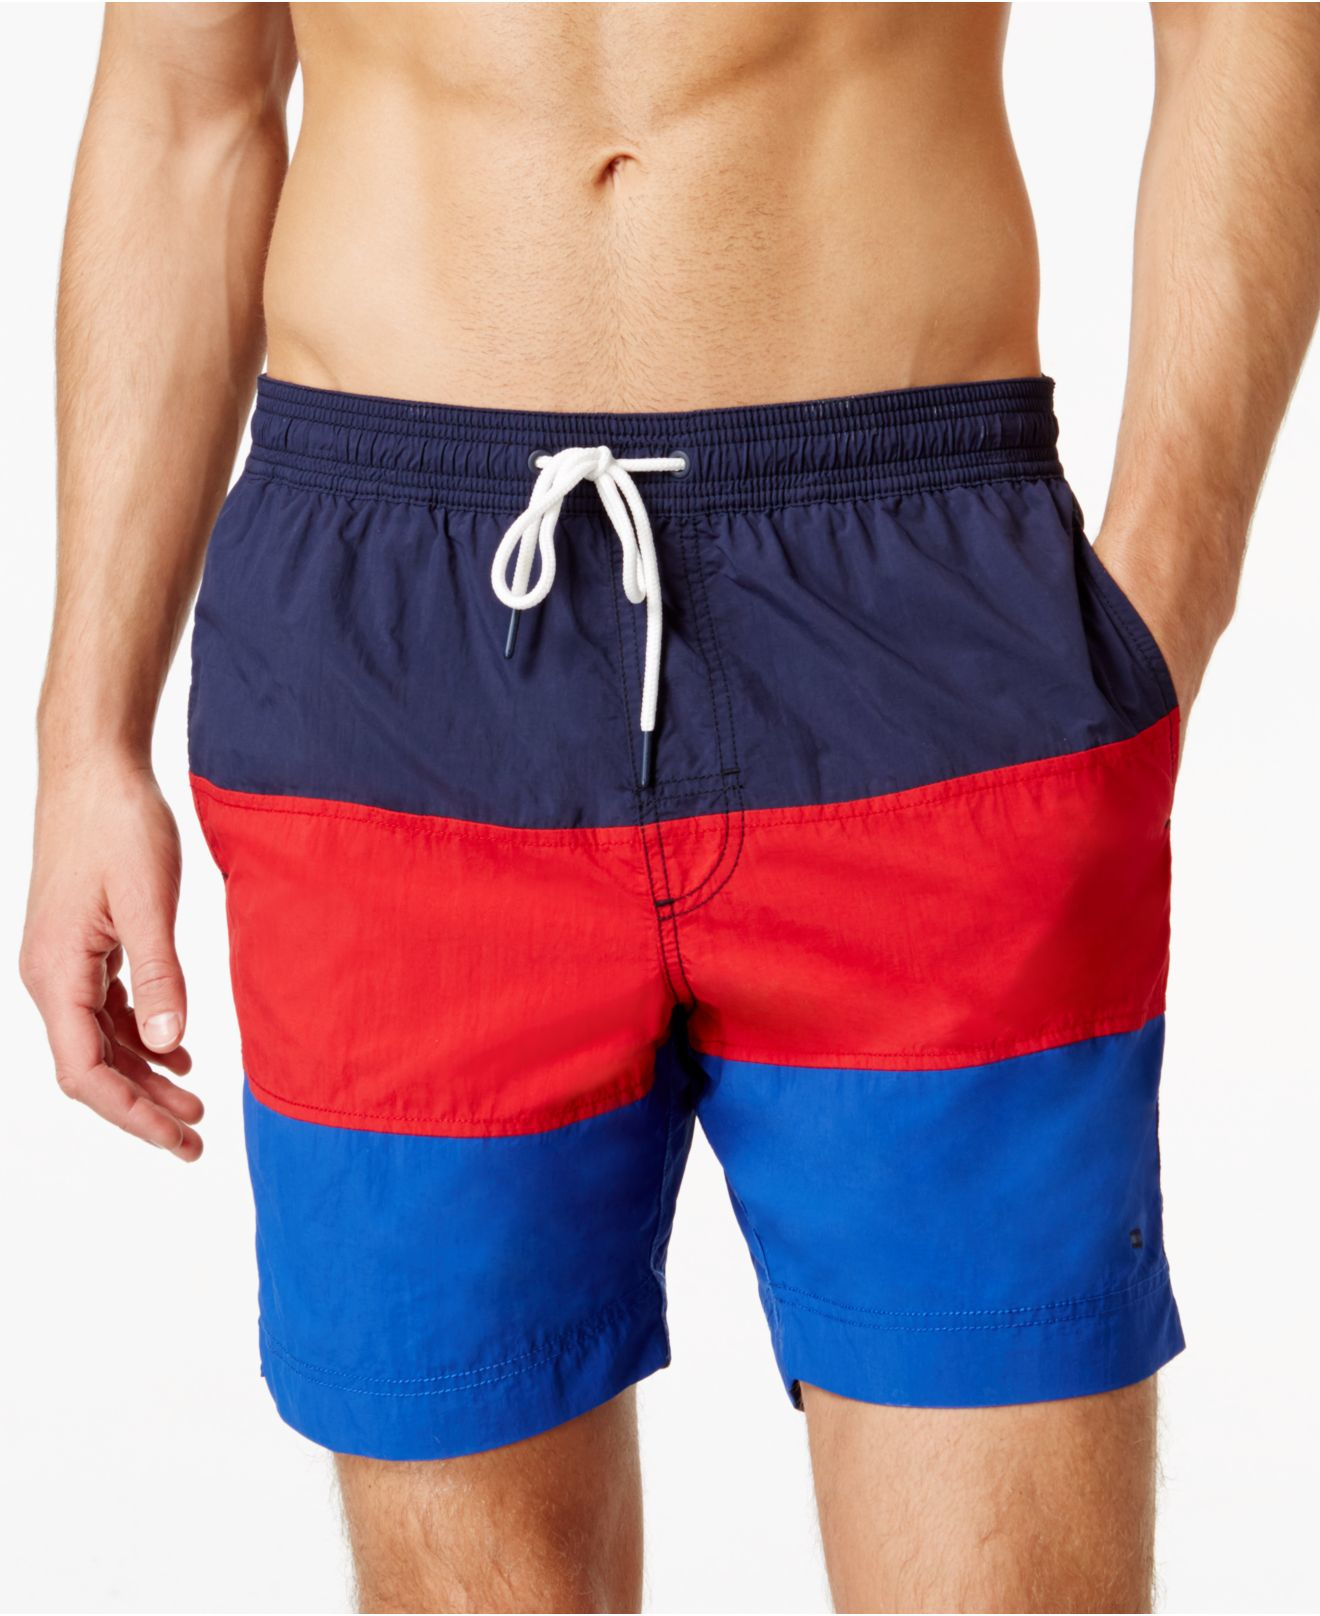 8bfa508a2bf3c Tommy Hilfiger Waterford Colorblocked Drawstring Swim Trunks in Blue ...